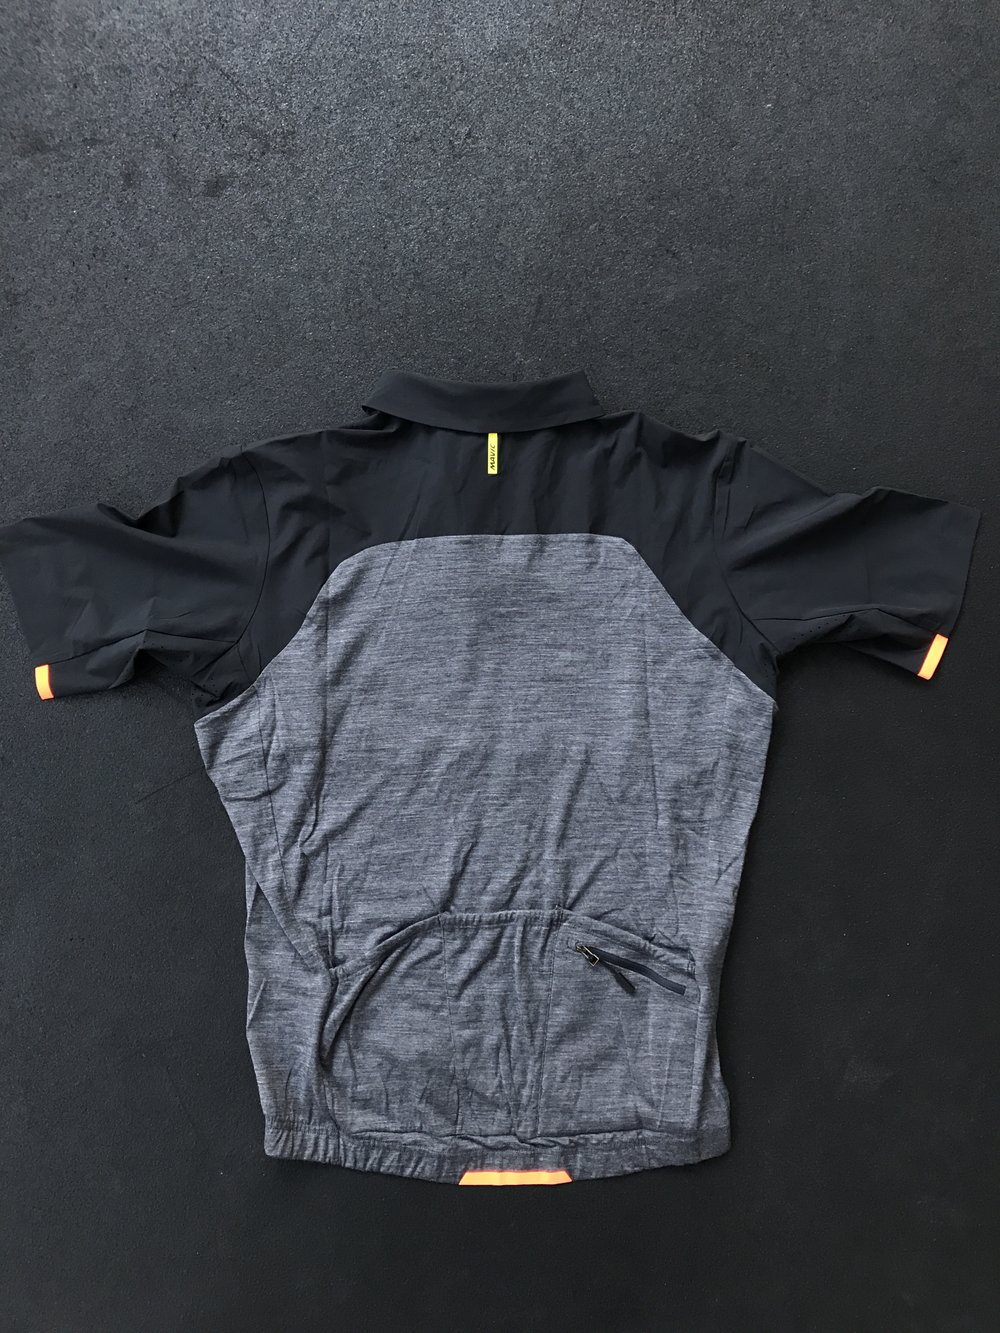 d20b6e76757 Gravel Apparel and the Mavic Allroad Kit — Gravelstoke